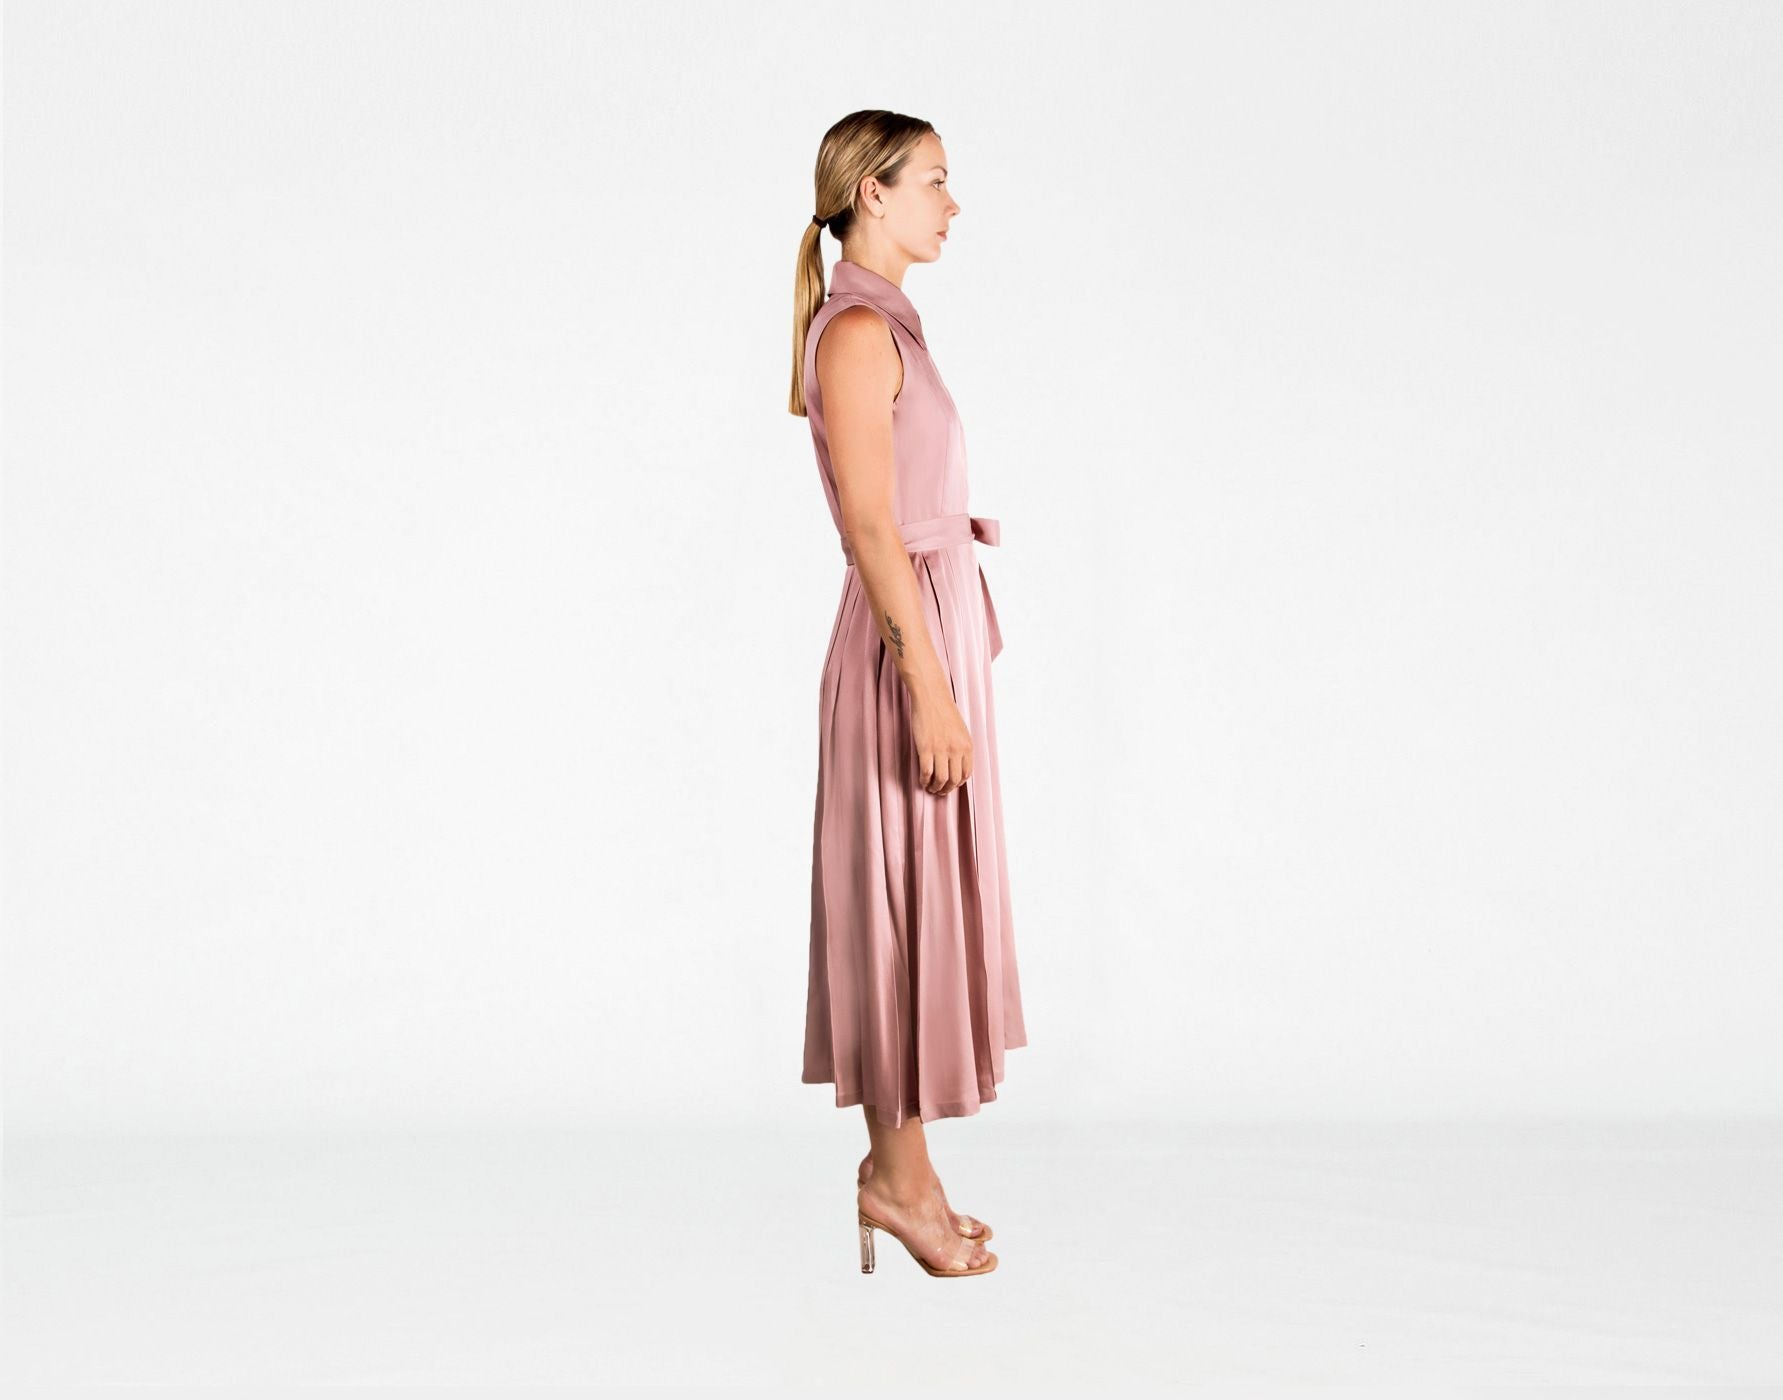 ASH ROSE SILK & COTTON DRESS - The Clothing LoungeSHOPYTE